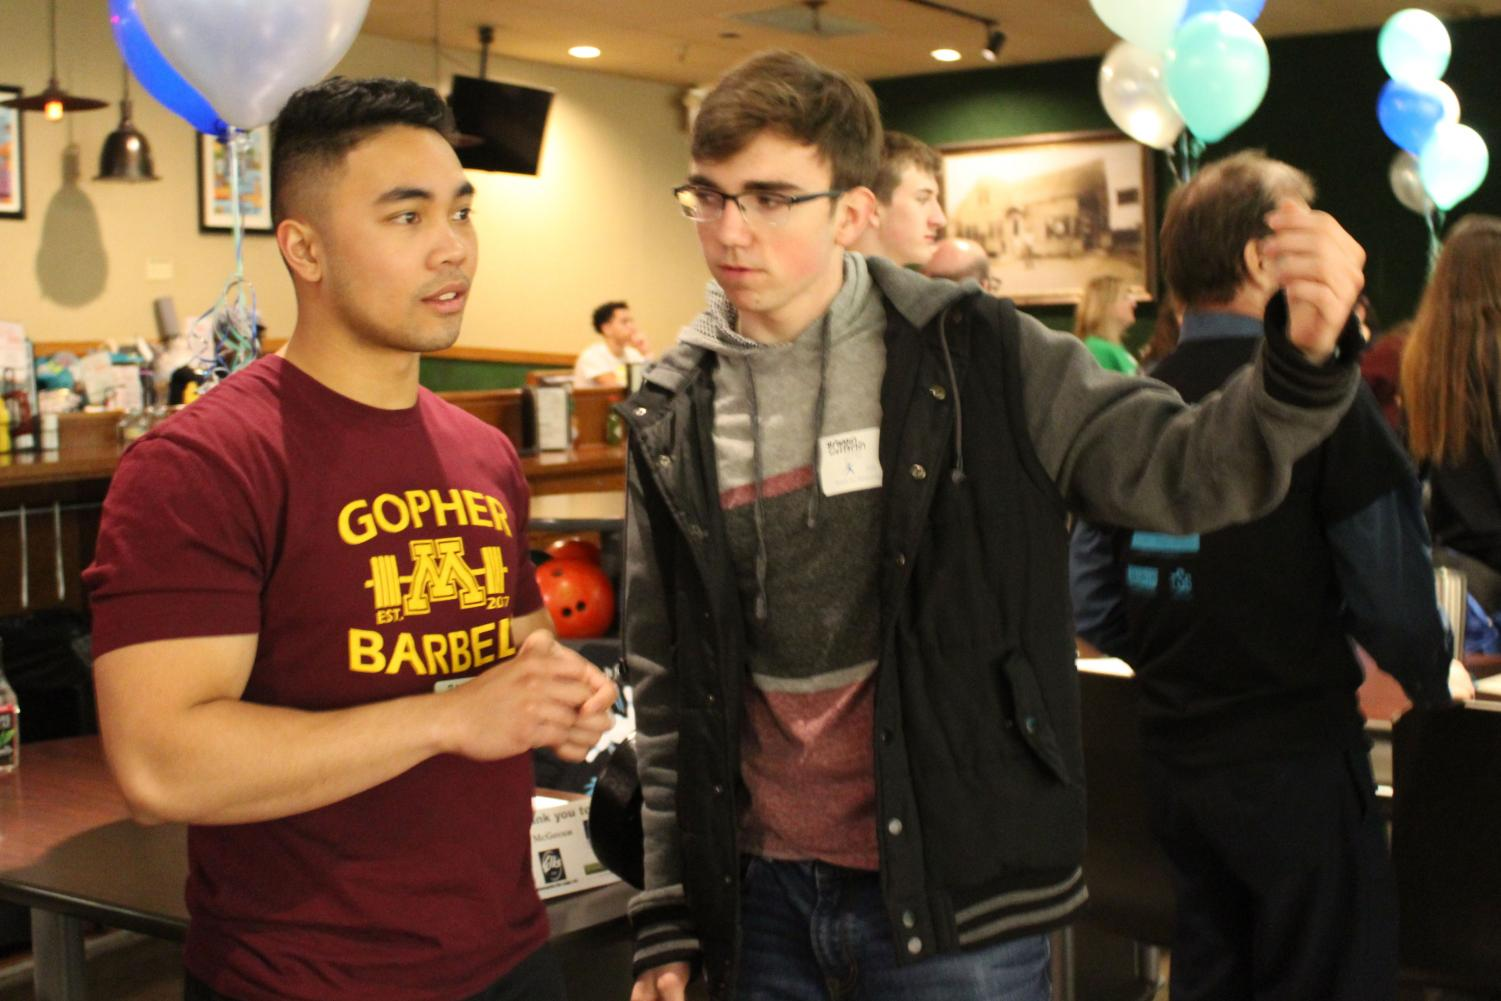 Junior Brandon Wetterlin discusses with a fellow volunteer about their bowling team's performance during the Bowl-A-Thon April 13 at Park Tavern. This was the 27th annal Bowl-A-Thon for Reach for Resources.